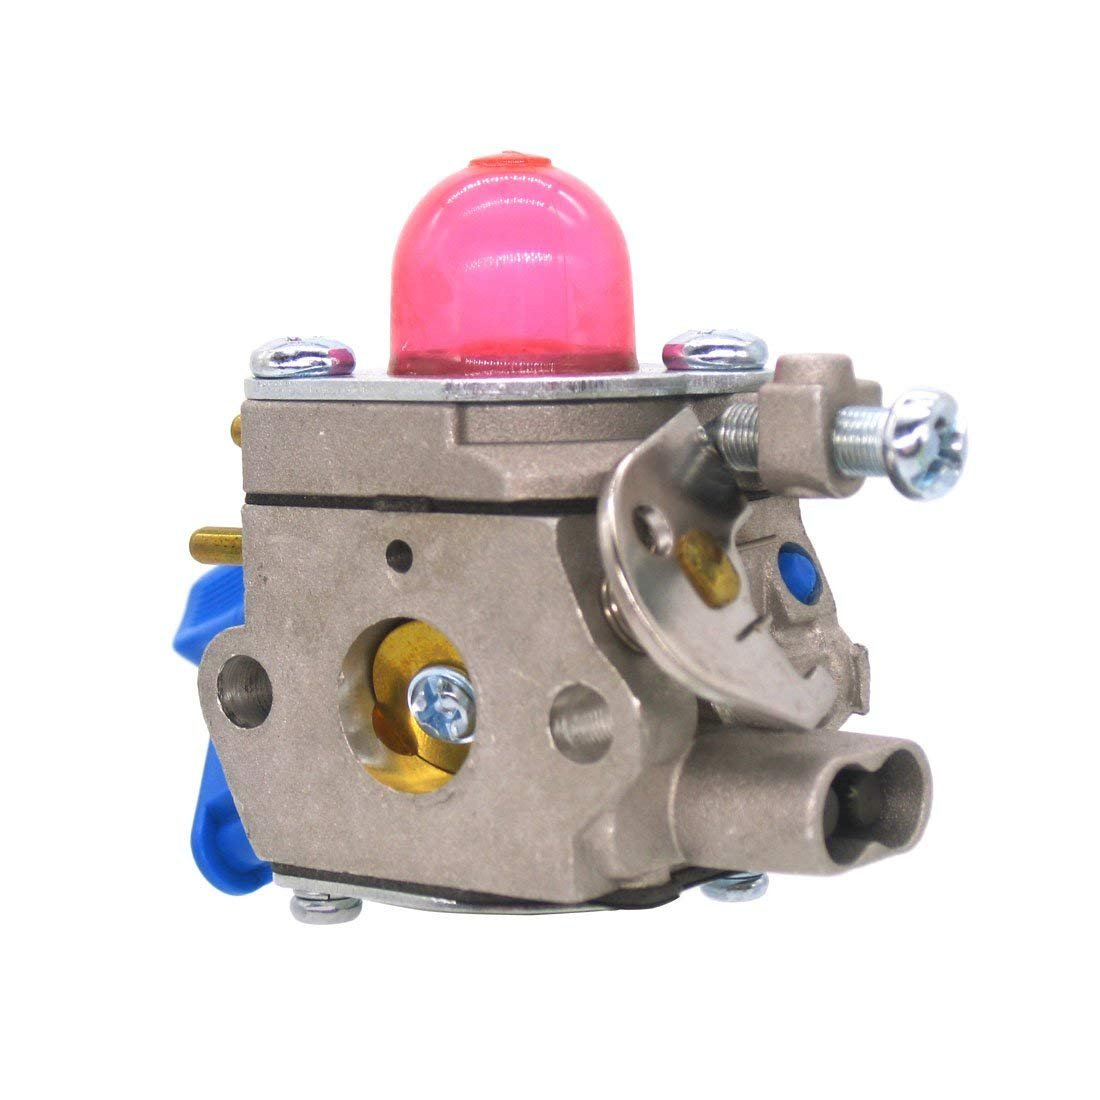 Xiscose Carburetor With Air Filter Spark Plug Fuel Filter Repower